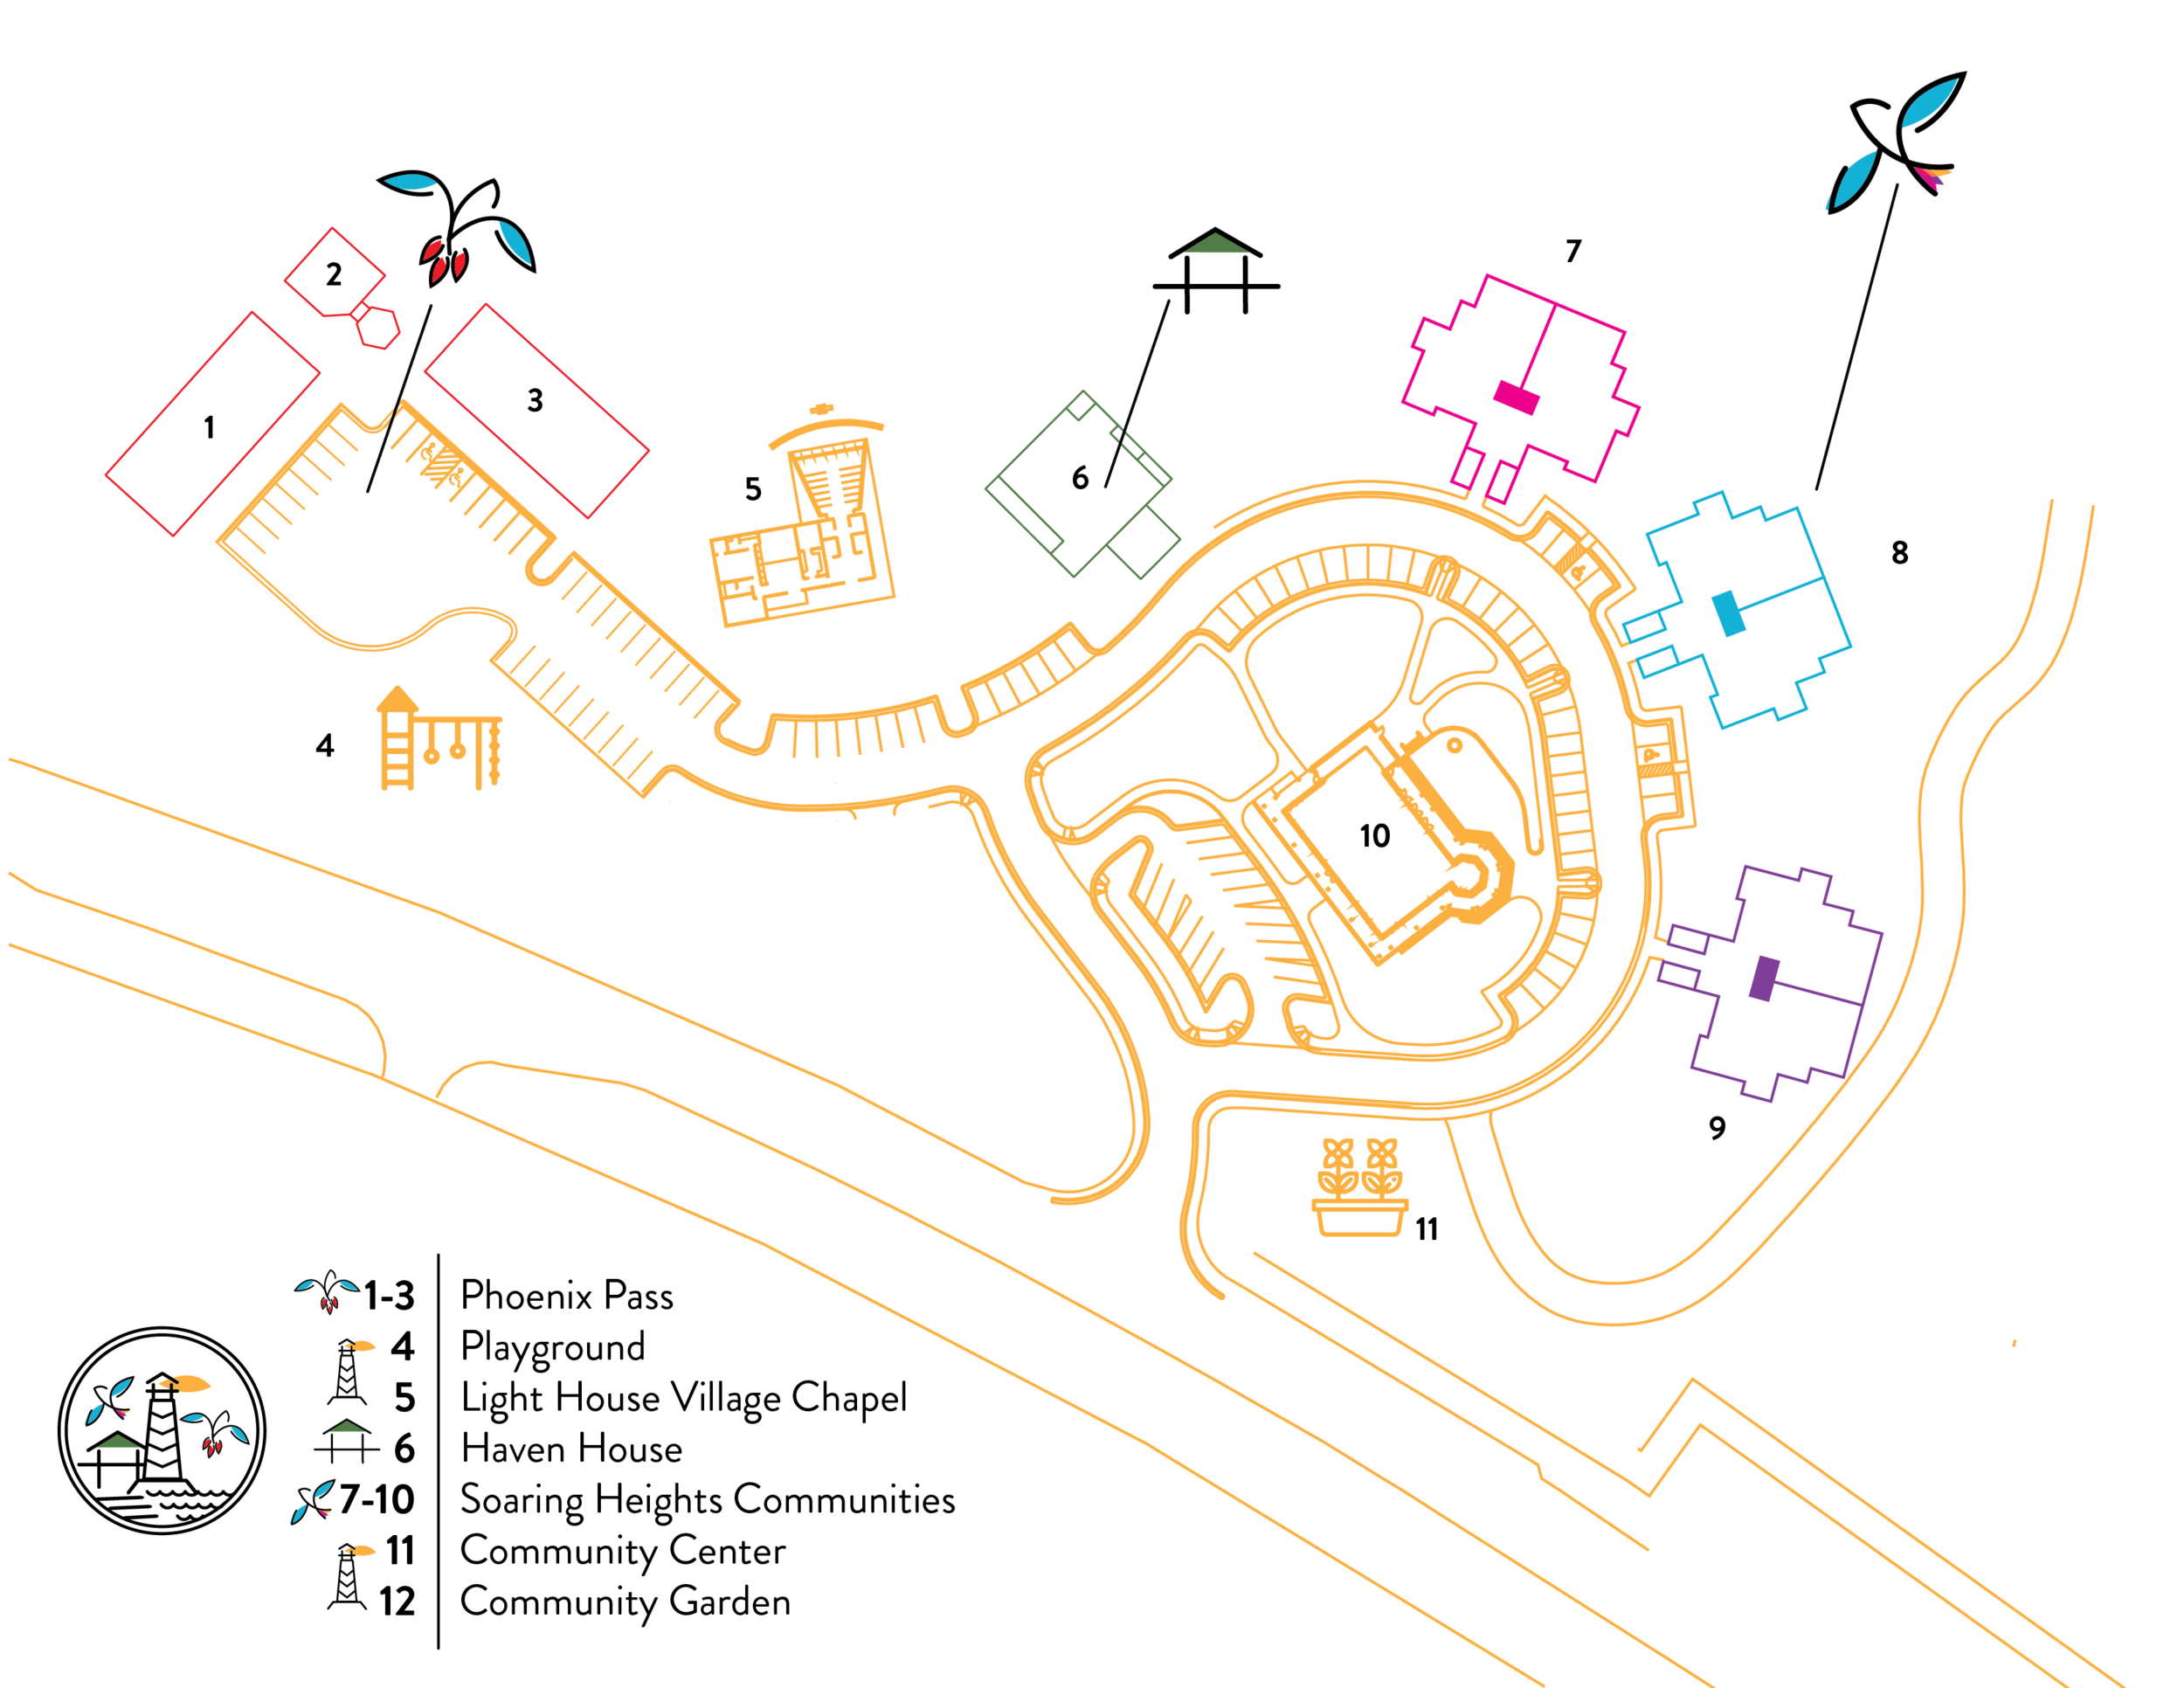 map_editable_withkey_transparent-01.png